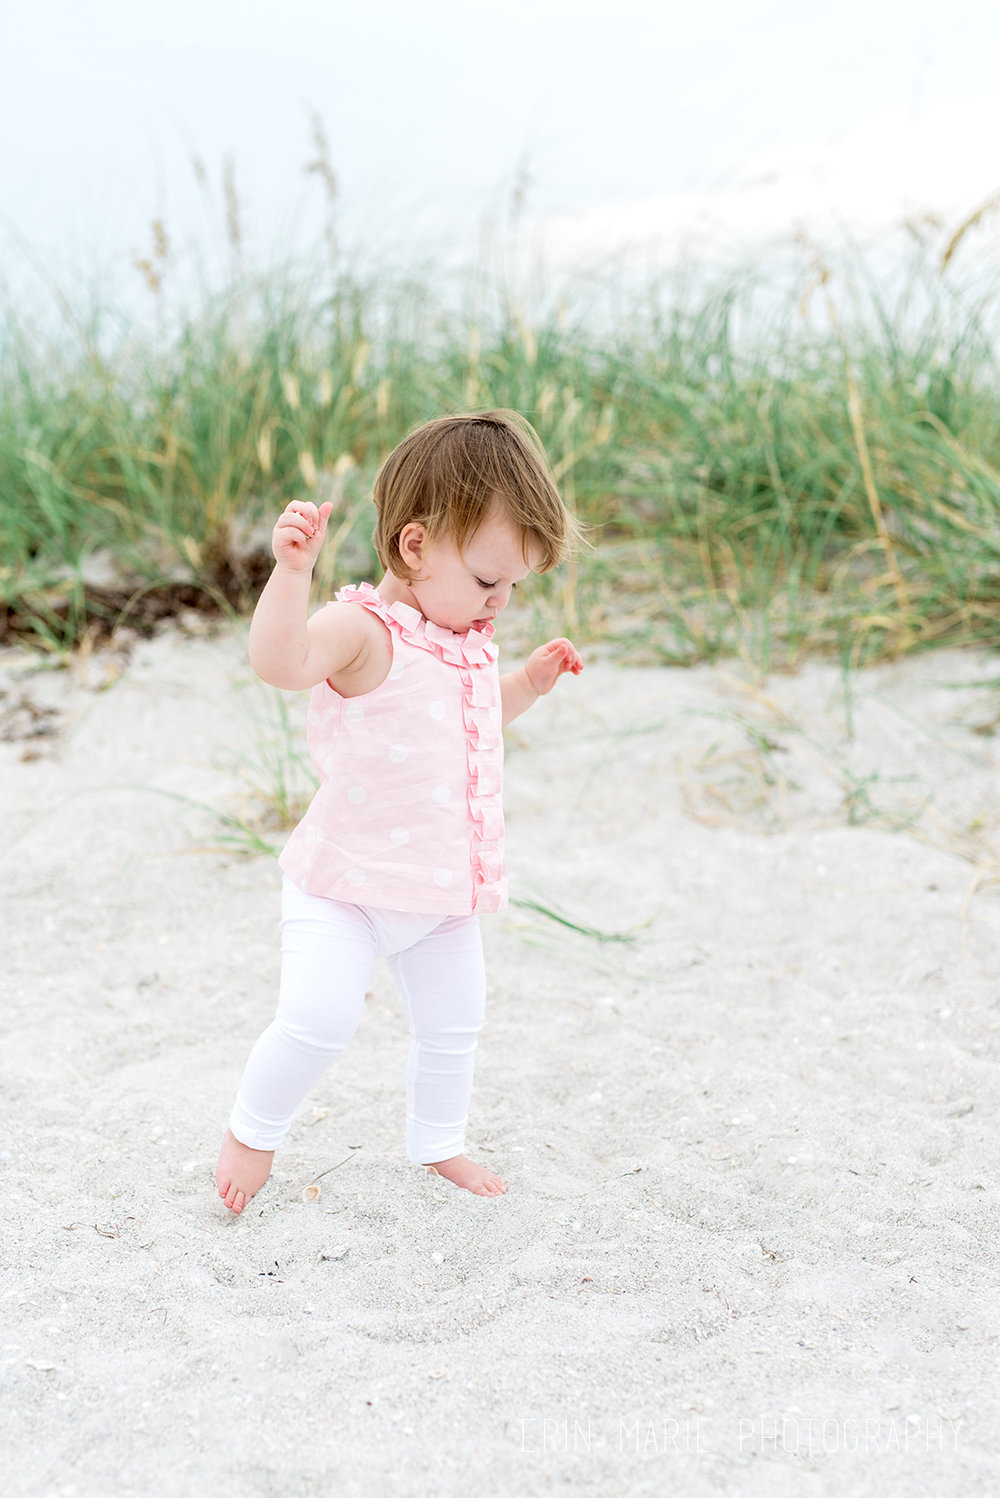 Sandkey_Beach_Family_Photographer_13.jpg